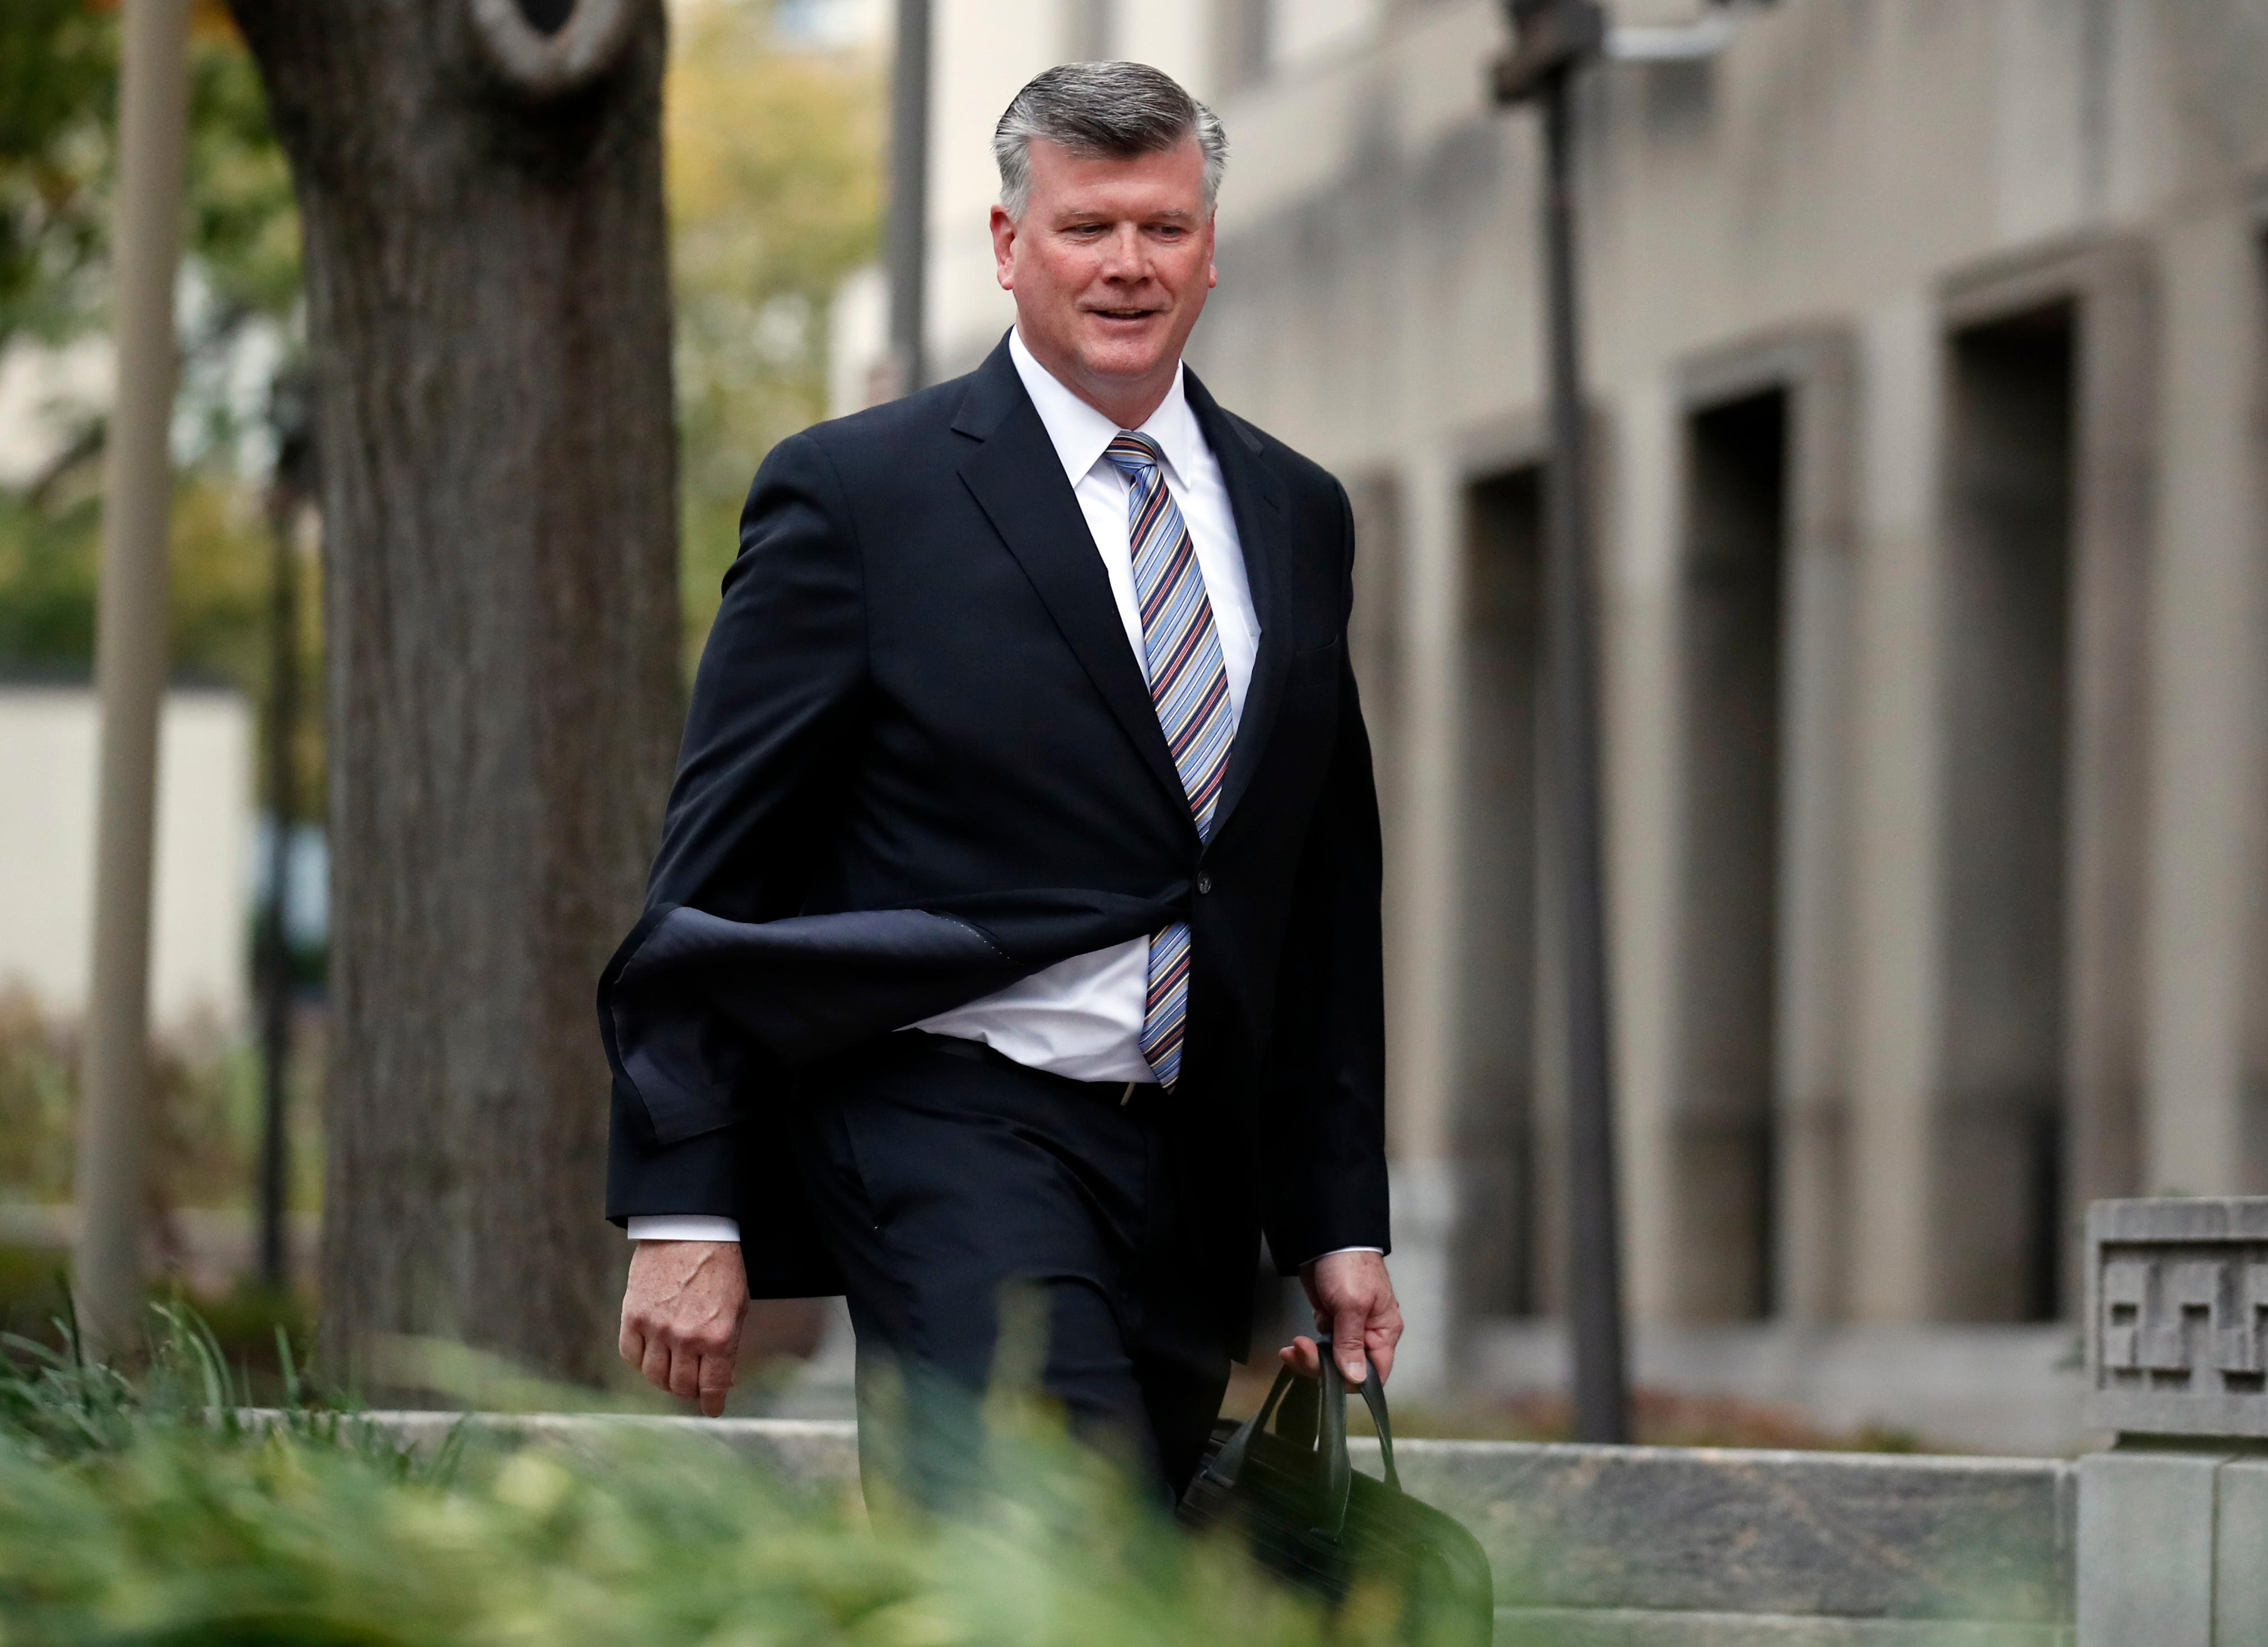 Kevin Downing, attorney for Paul Manafort arrives at Federal District Court, Monday, Nov. 6, 2017, in Washington. Manafort, President Donald Trump's former campaign chairman, and Manafort's business associate Rick Gates, are in court for a bond hearing on felony charges of conspiracy against the United States and other counts. (AP Photo/Alex Brandon)